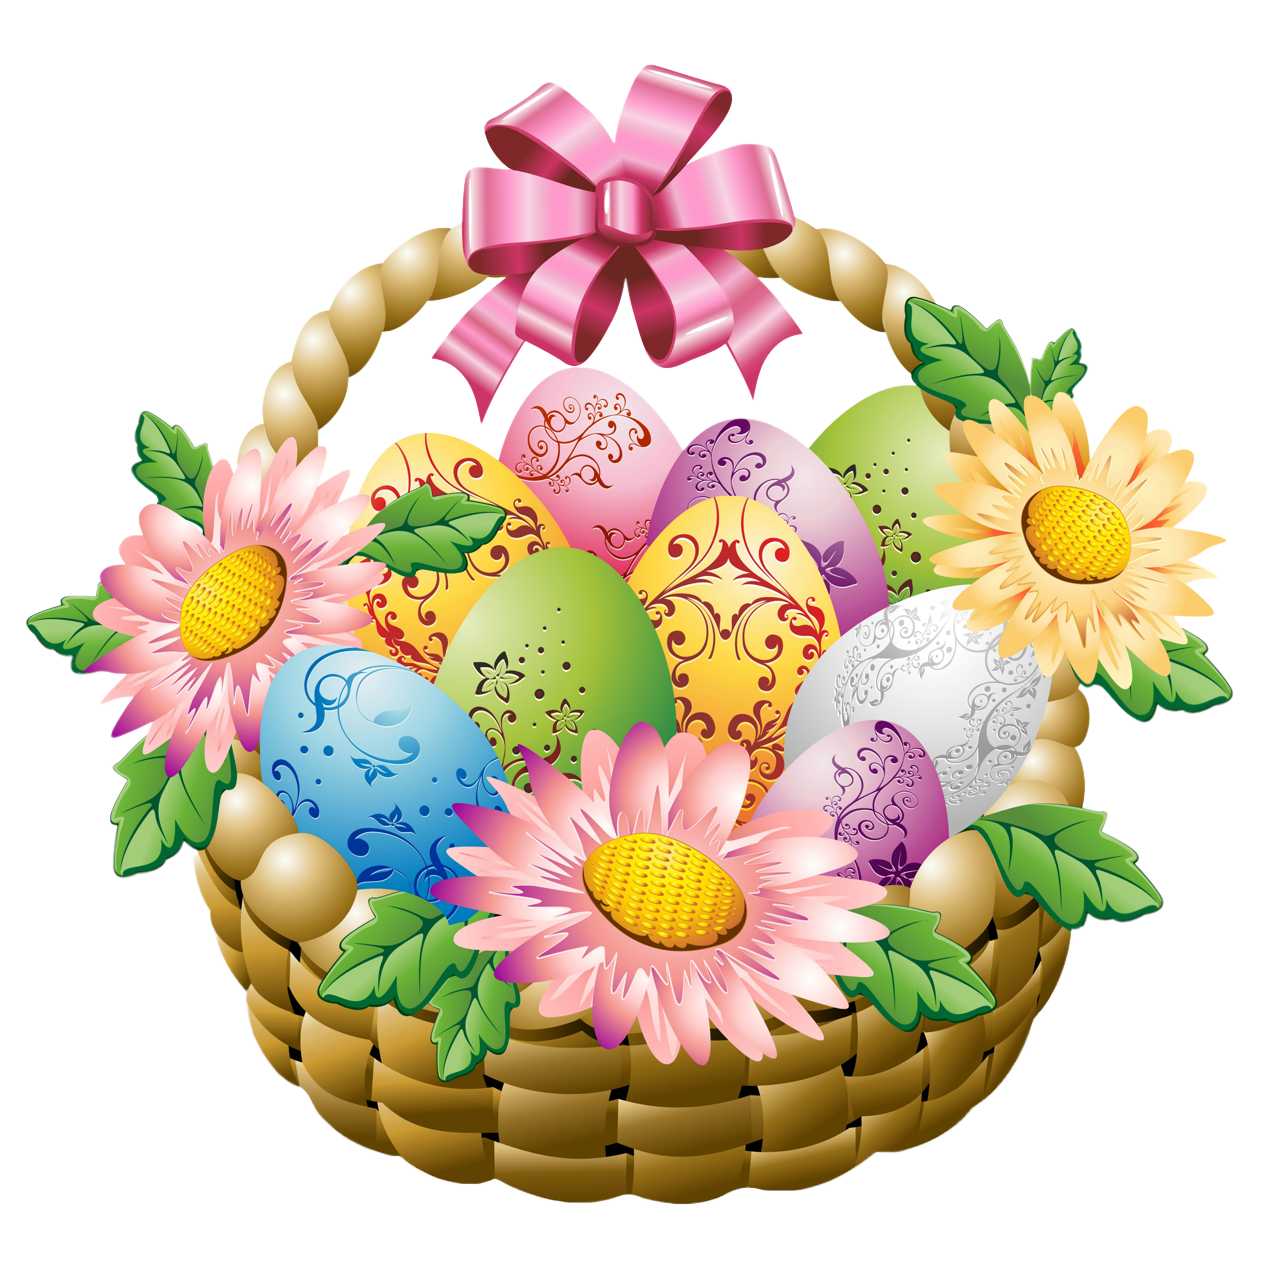 Flowers at getdrawings com. Clipart hat easter